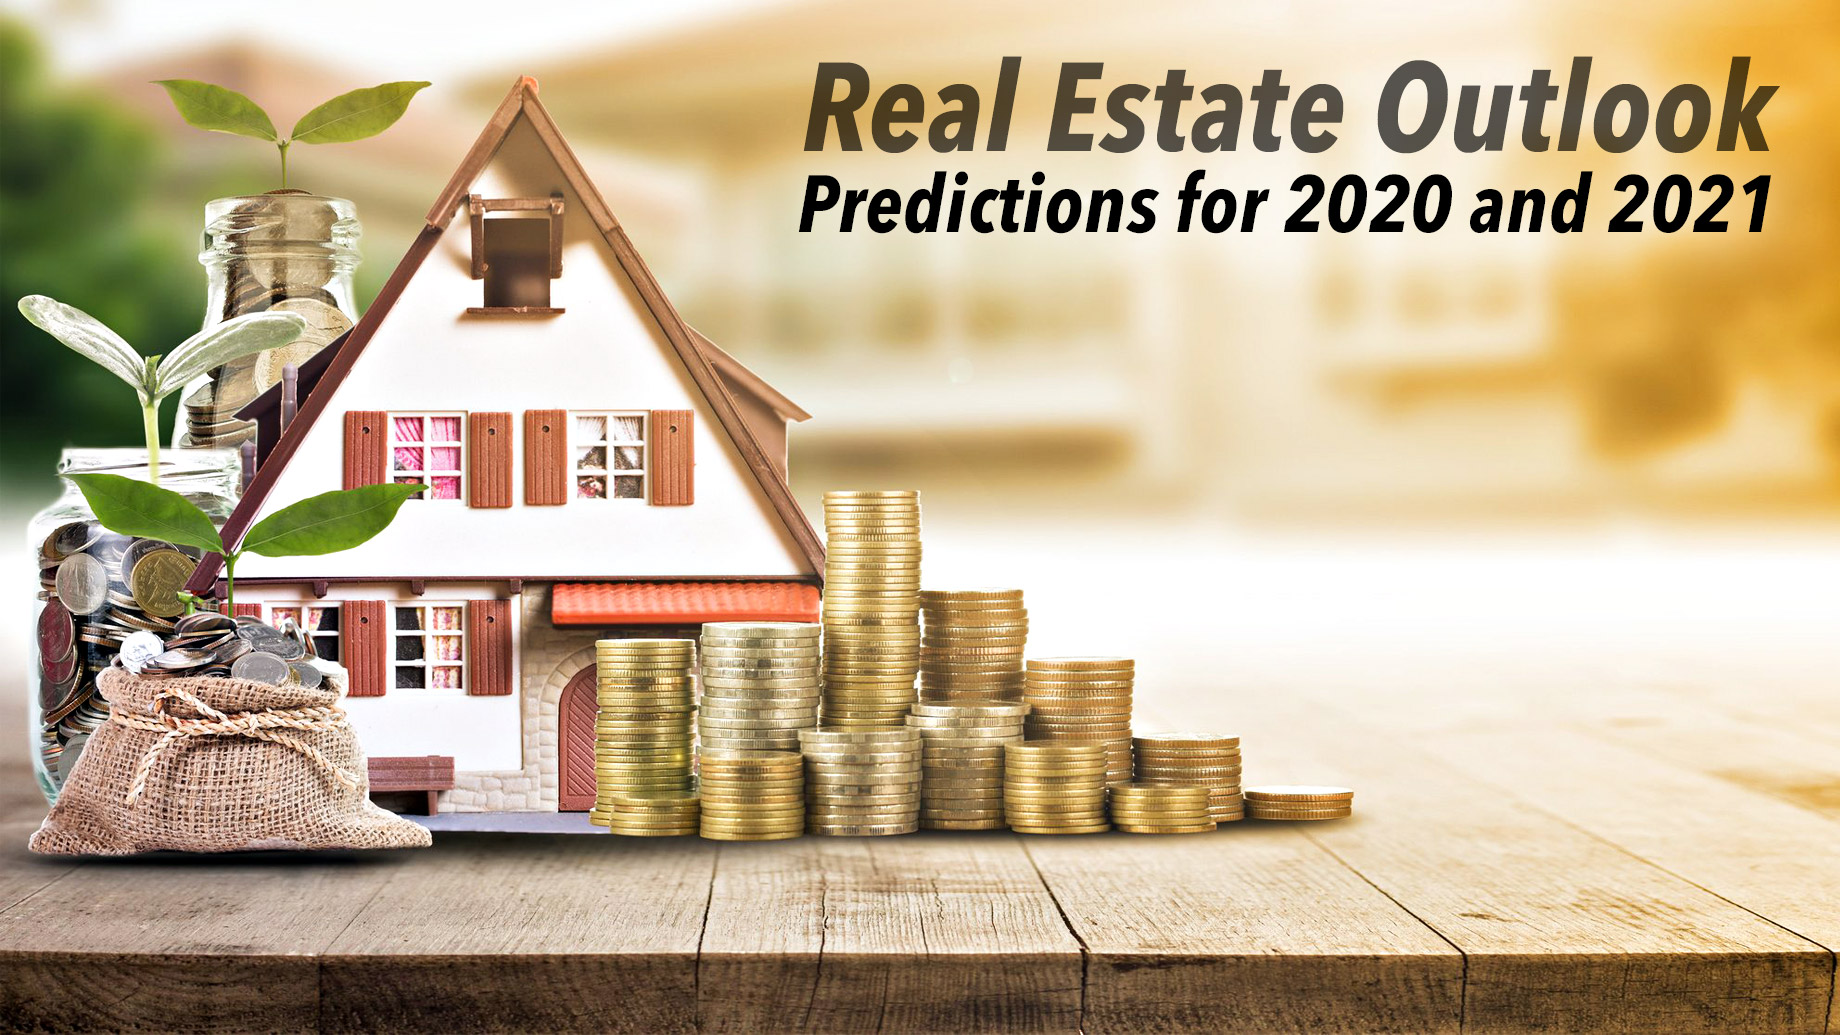 Real Estate Outlook - Predictions for 2020 and 2021